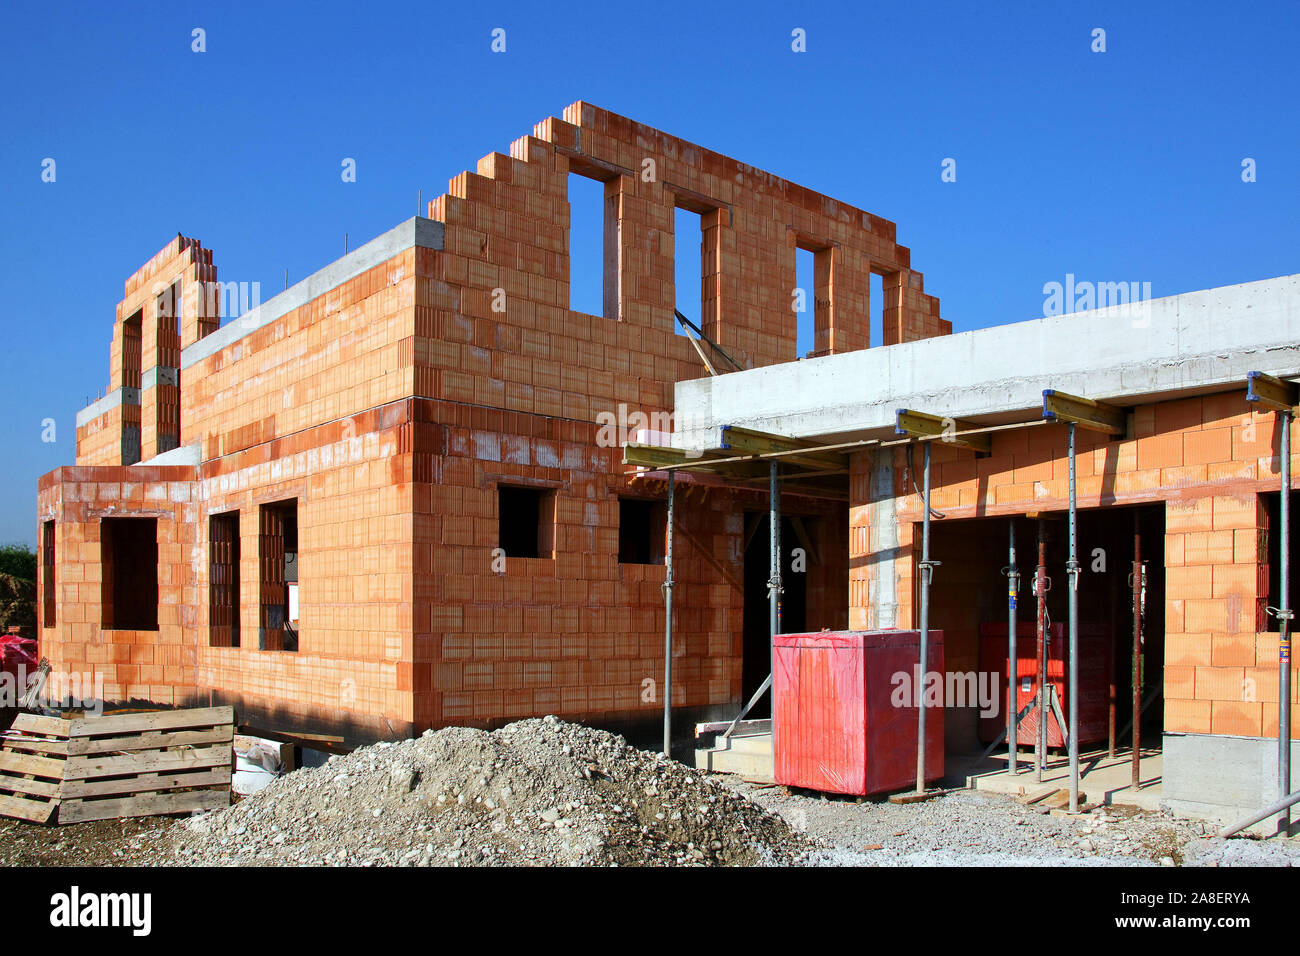 Eigenheim Baustelle High Resolution Stock Photography and Images - Alamy